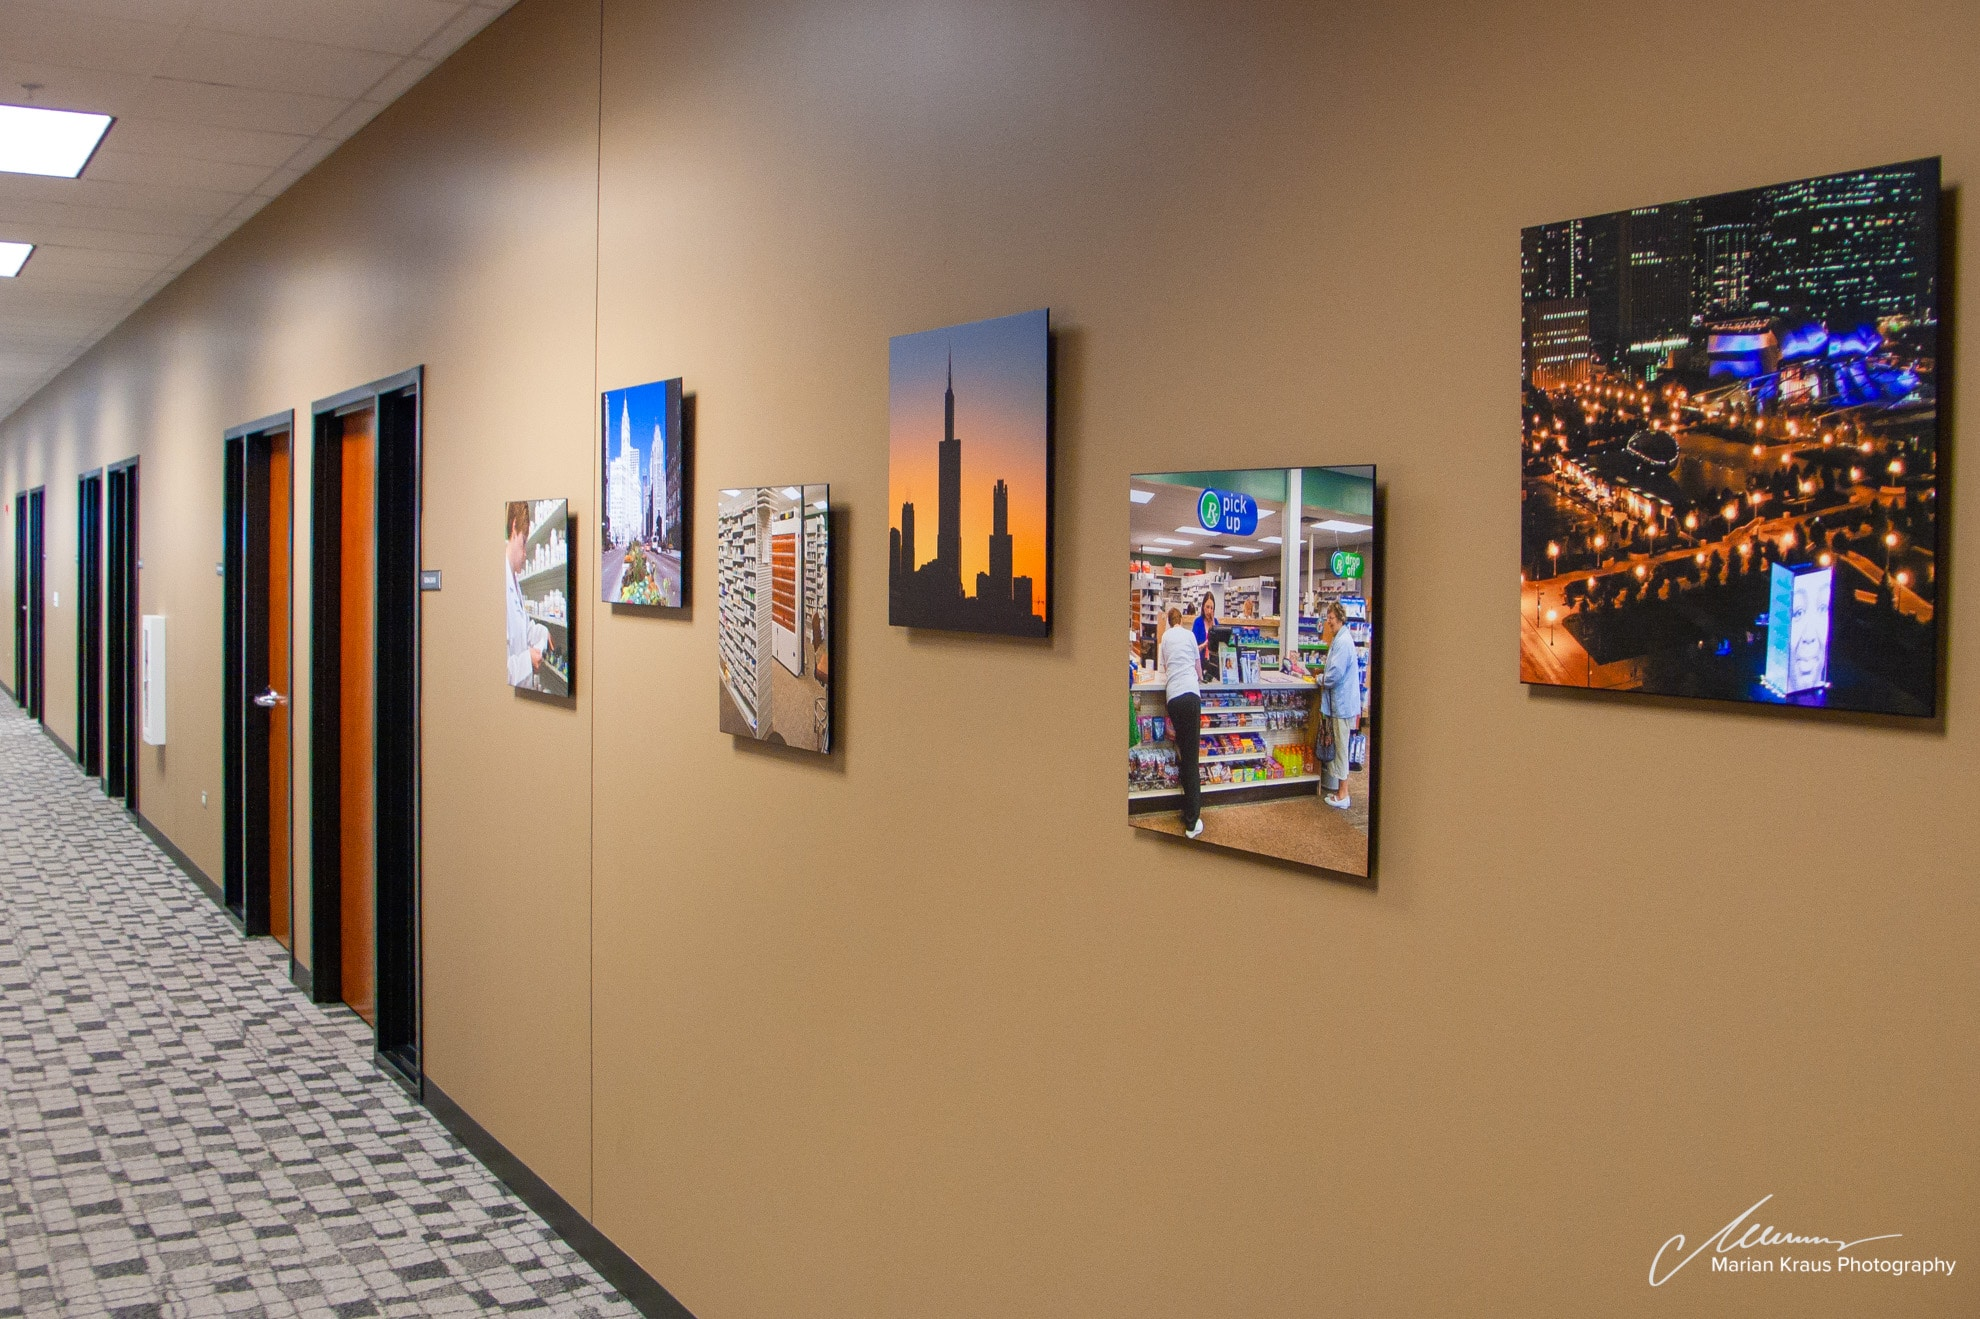 Wall Decoration Fine Art Photography Ideal For Wall Art In